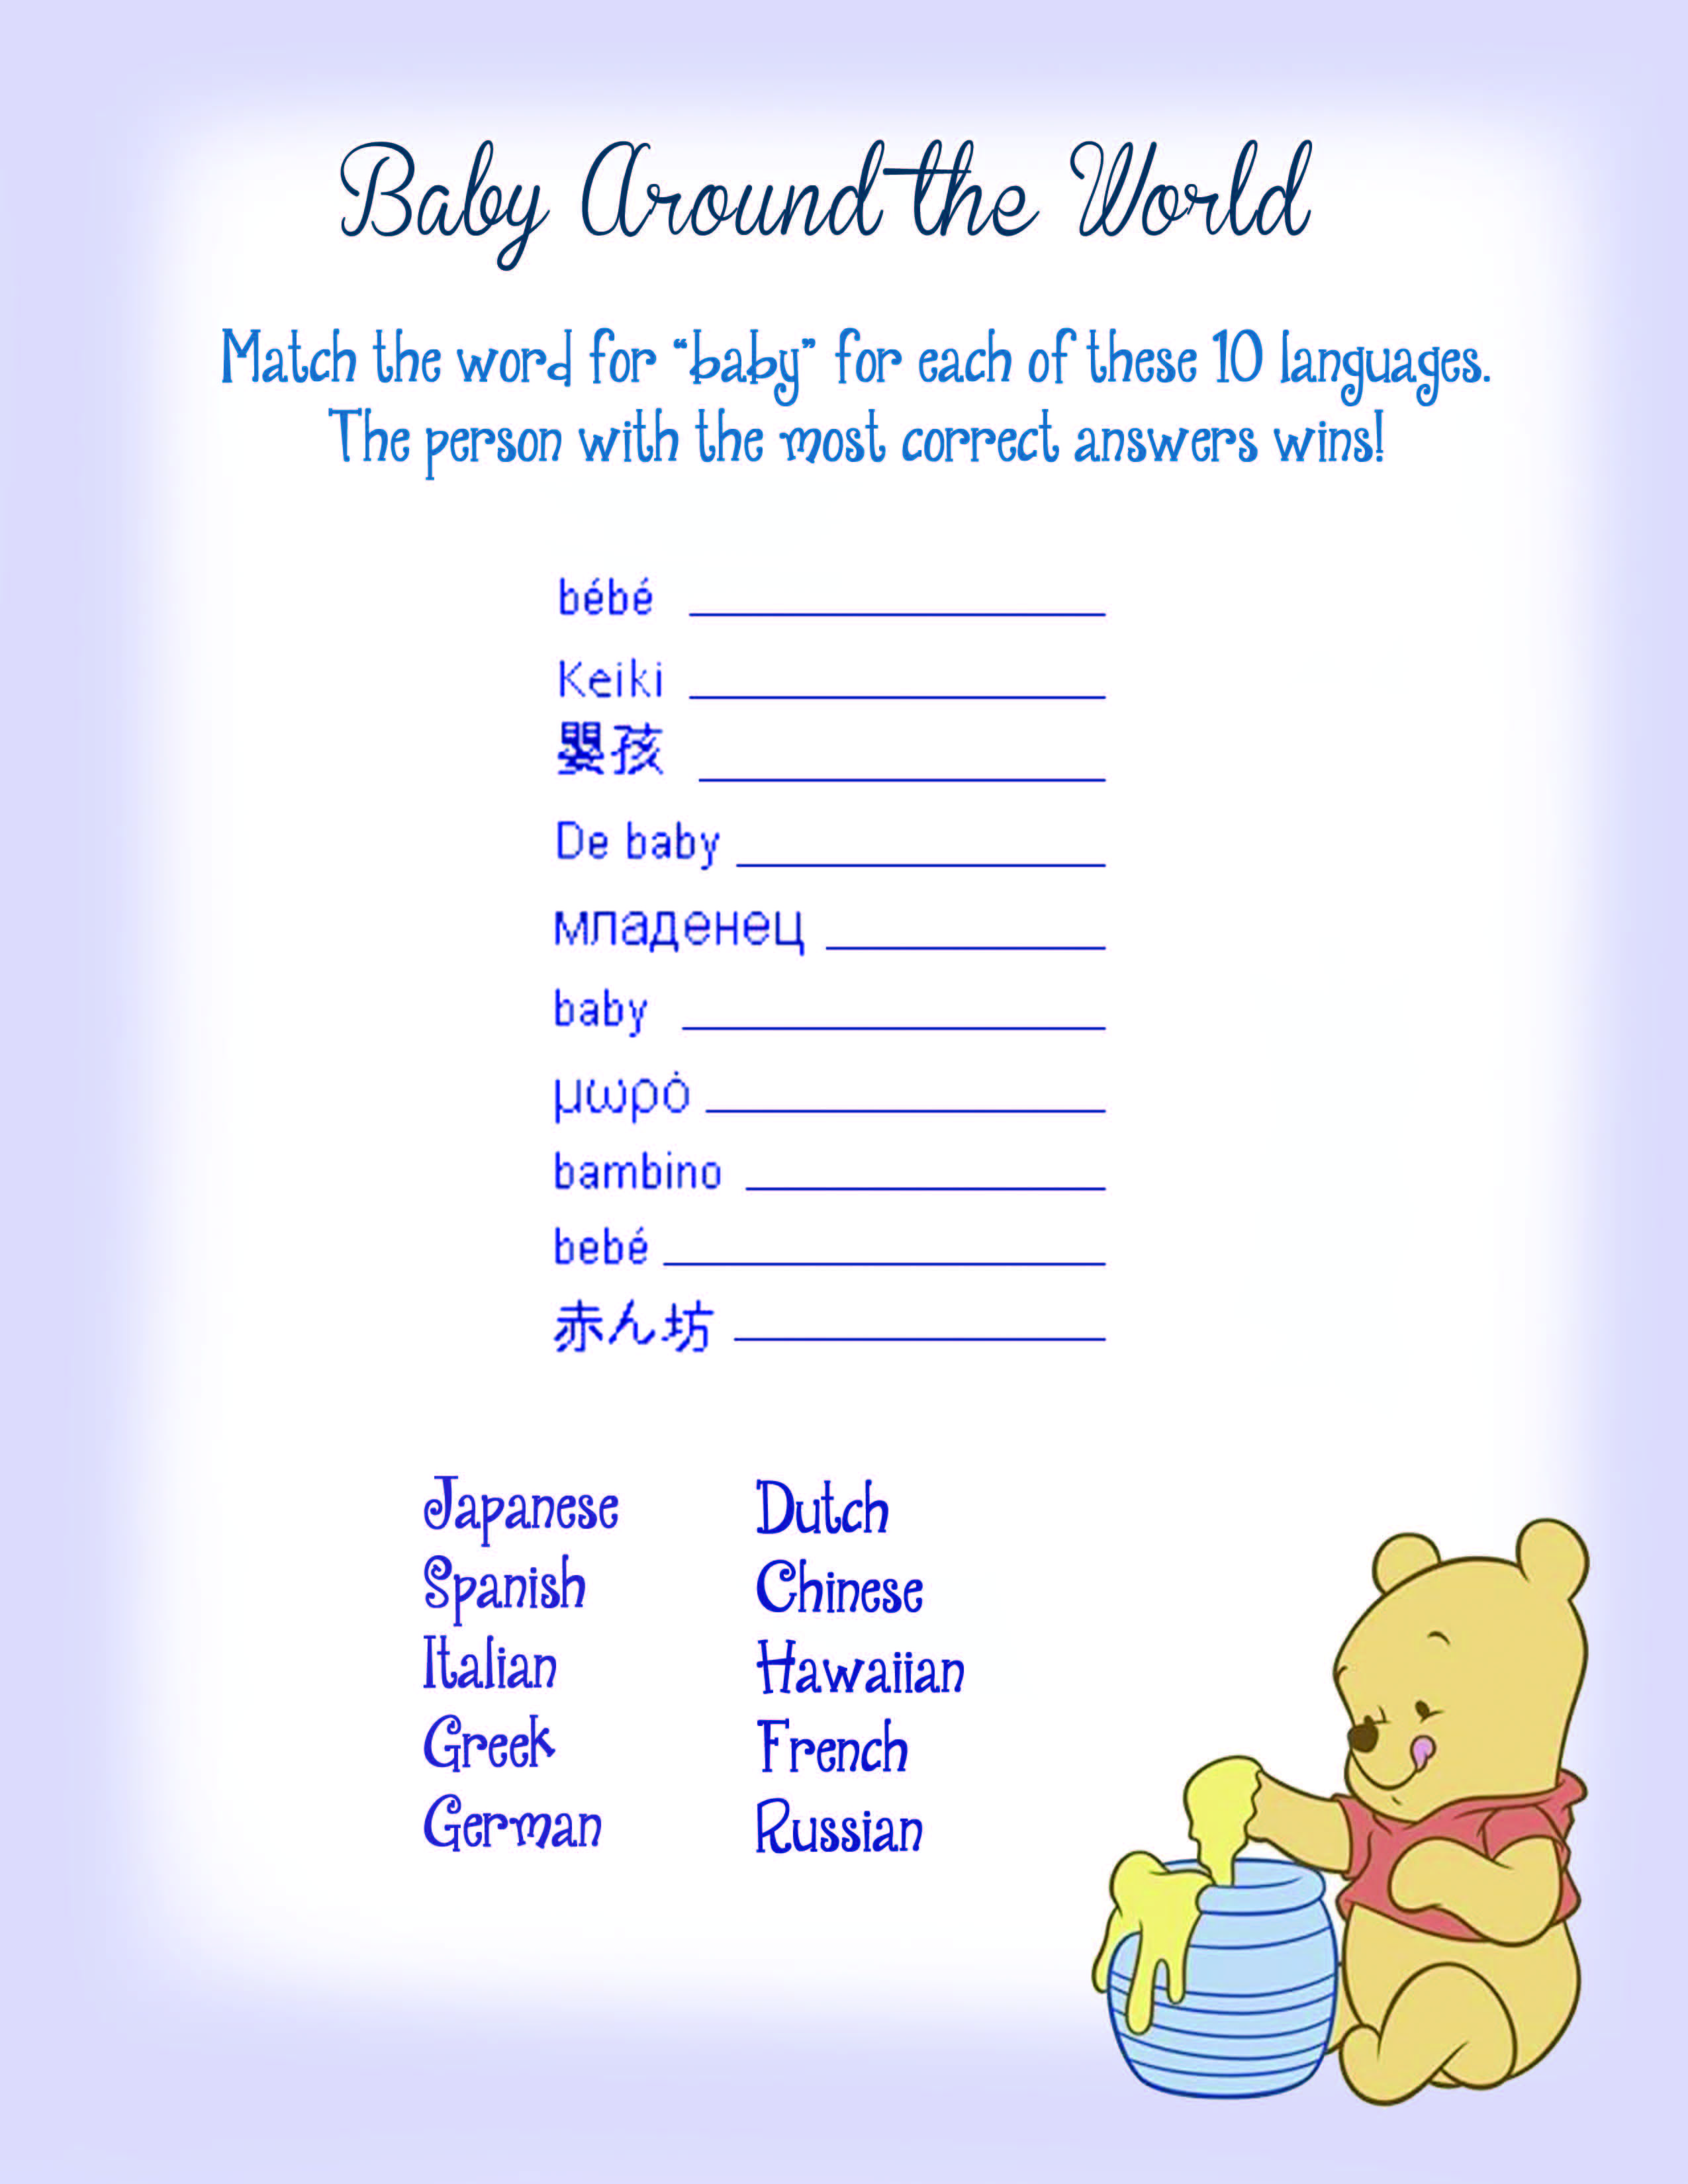 Around the World Baby Shower Game Winne the Pooh Theme | Party Ideas ...